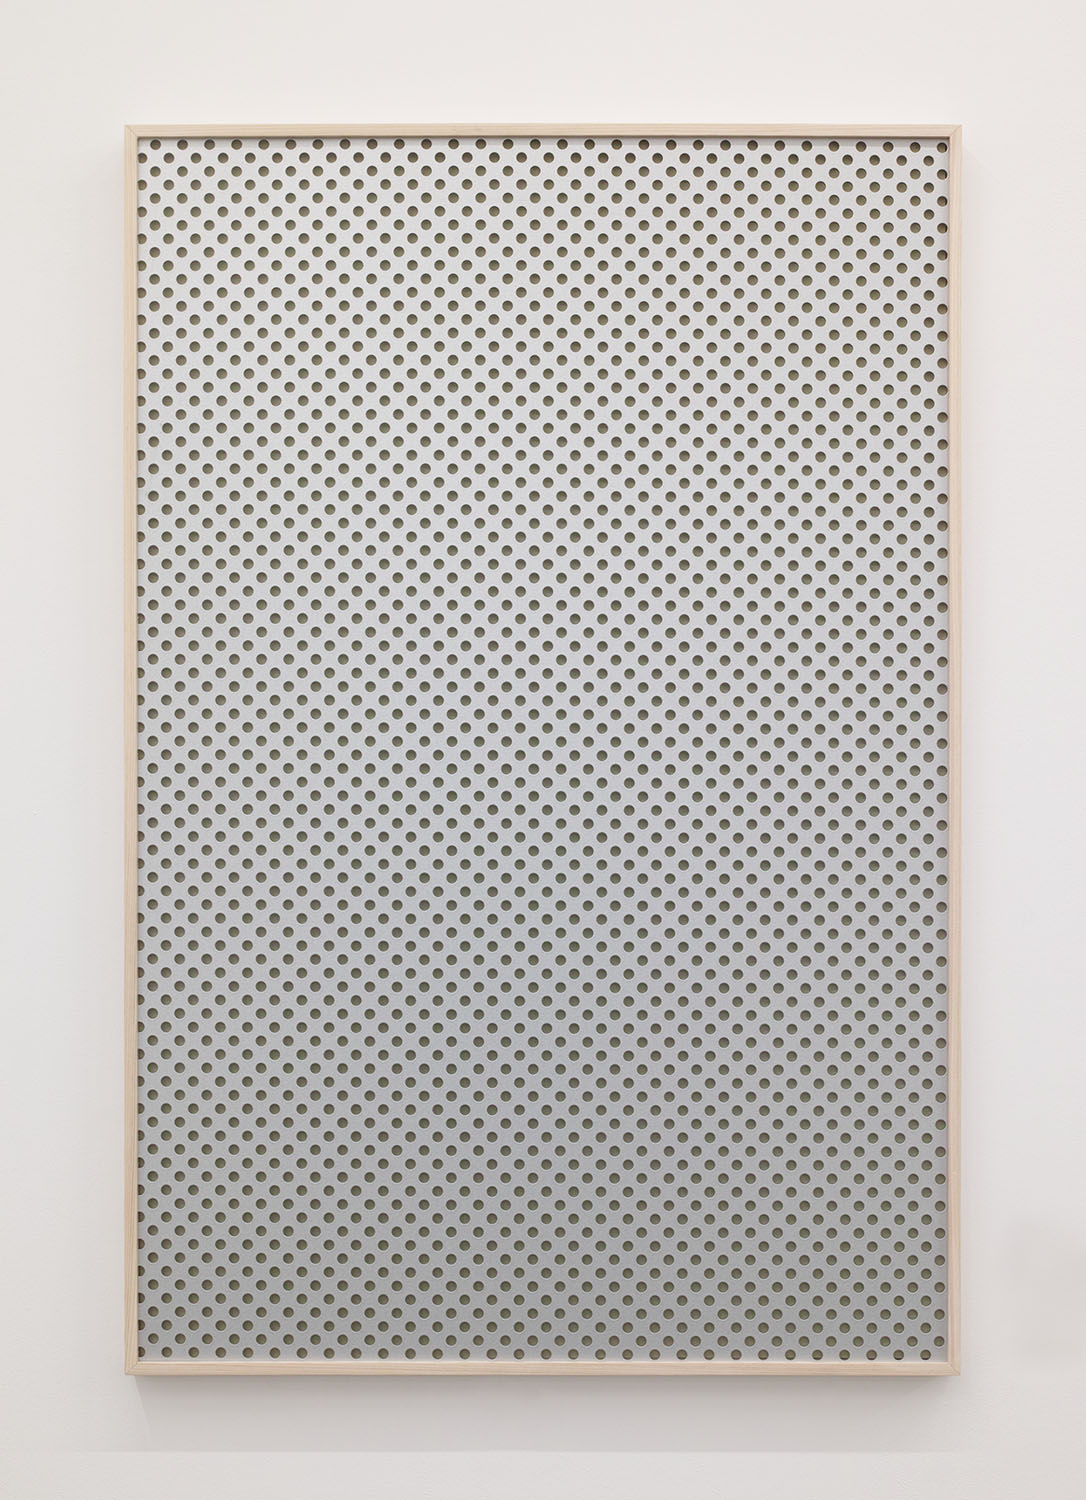 夜景/Night view|Perforated board, acrylic paint, luminescent pigment|915 x 612 x 30 mm|2020<br>¥150,000-250,000